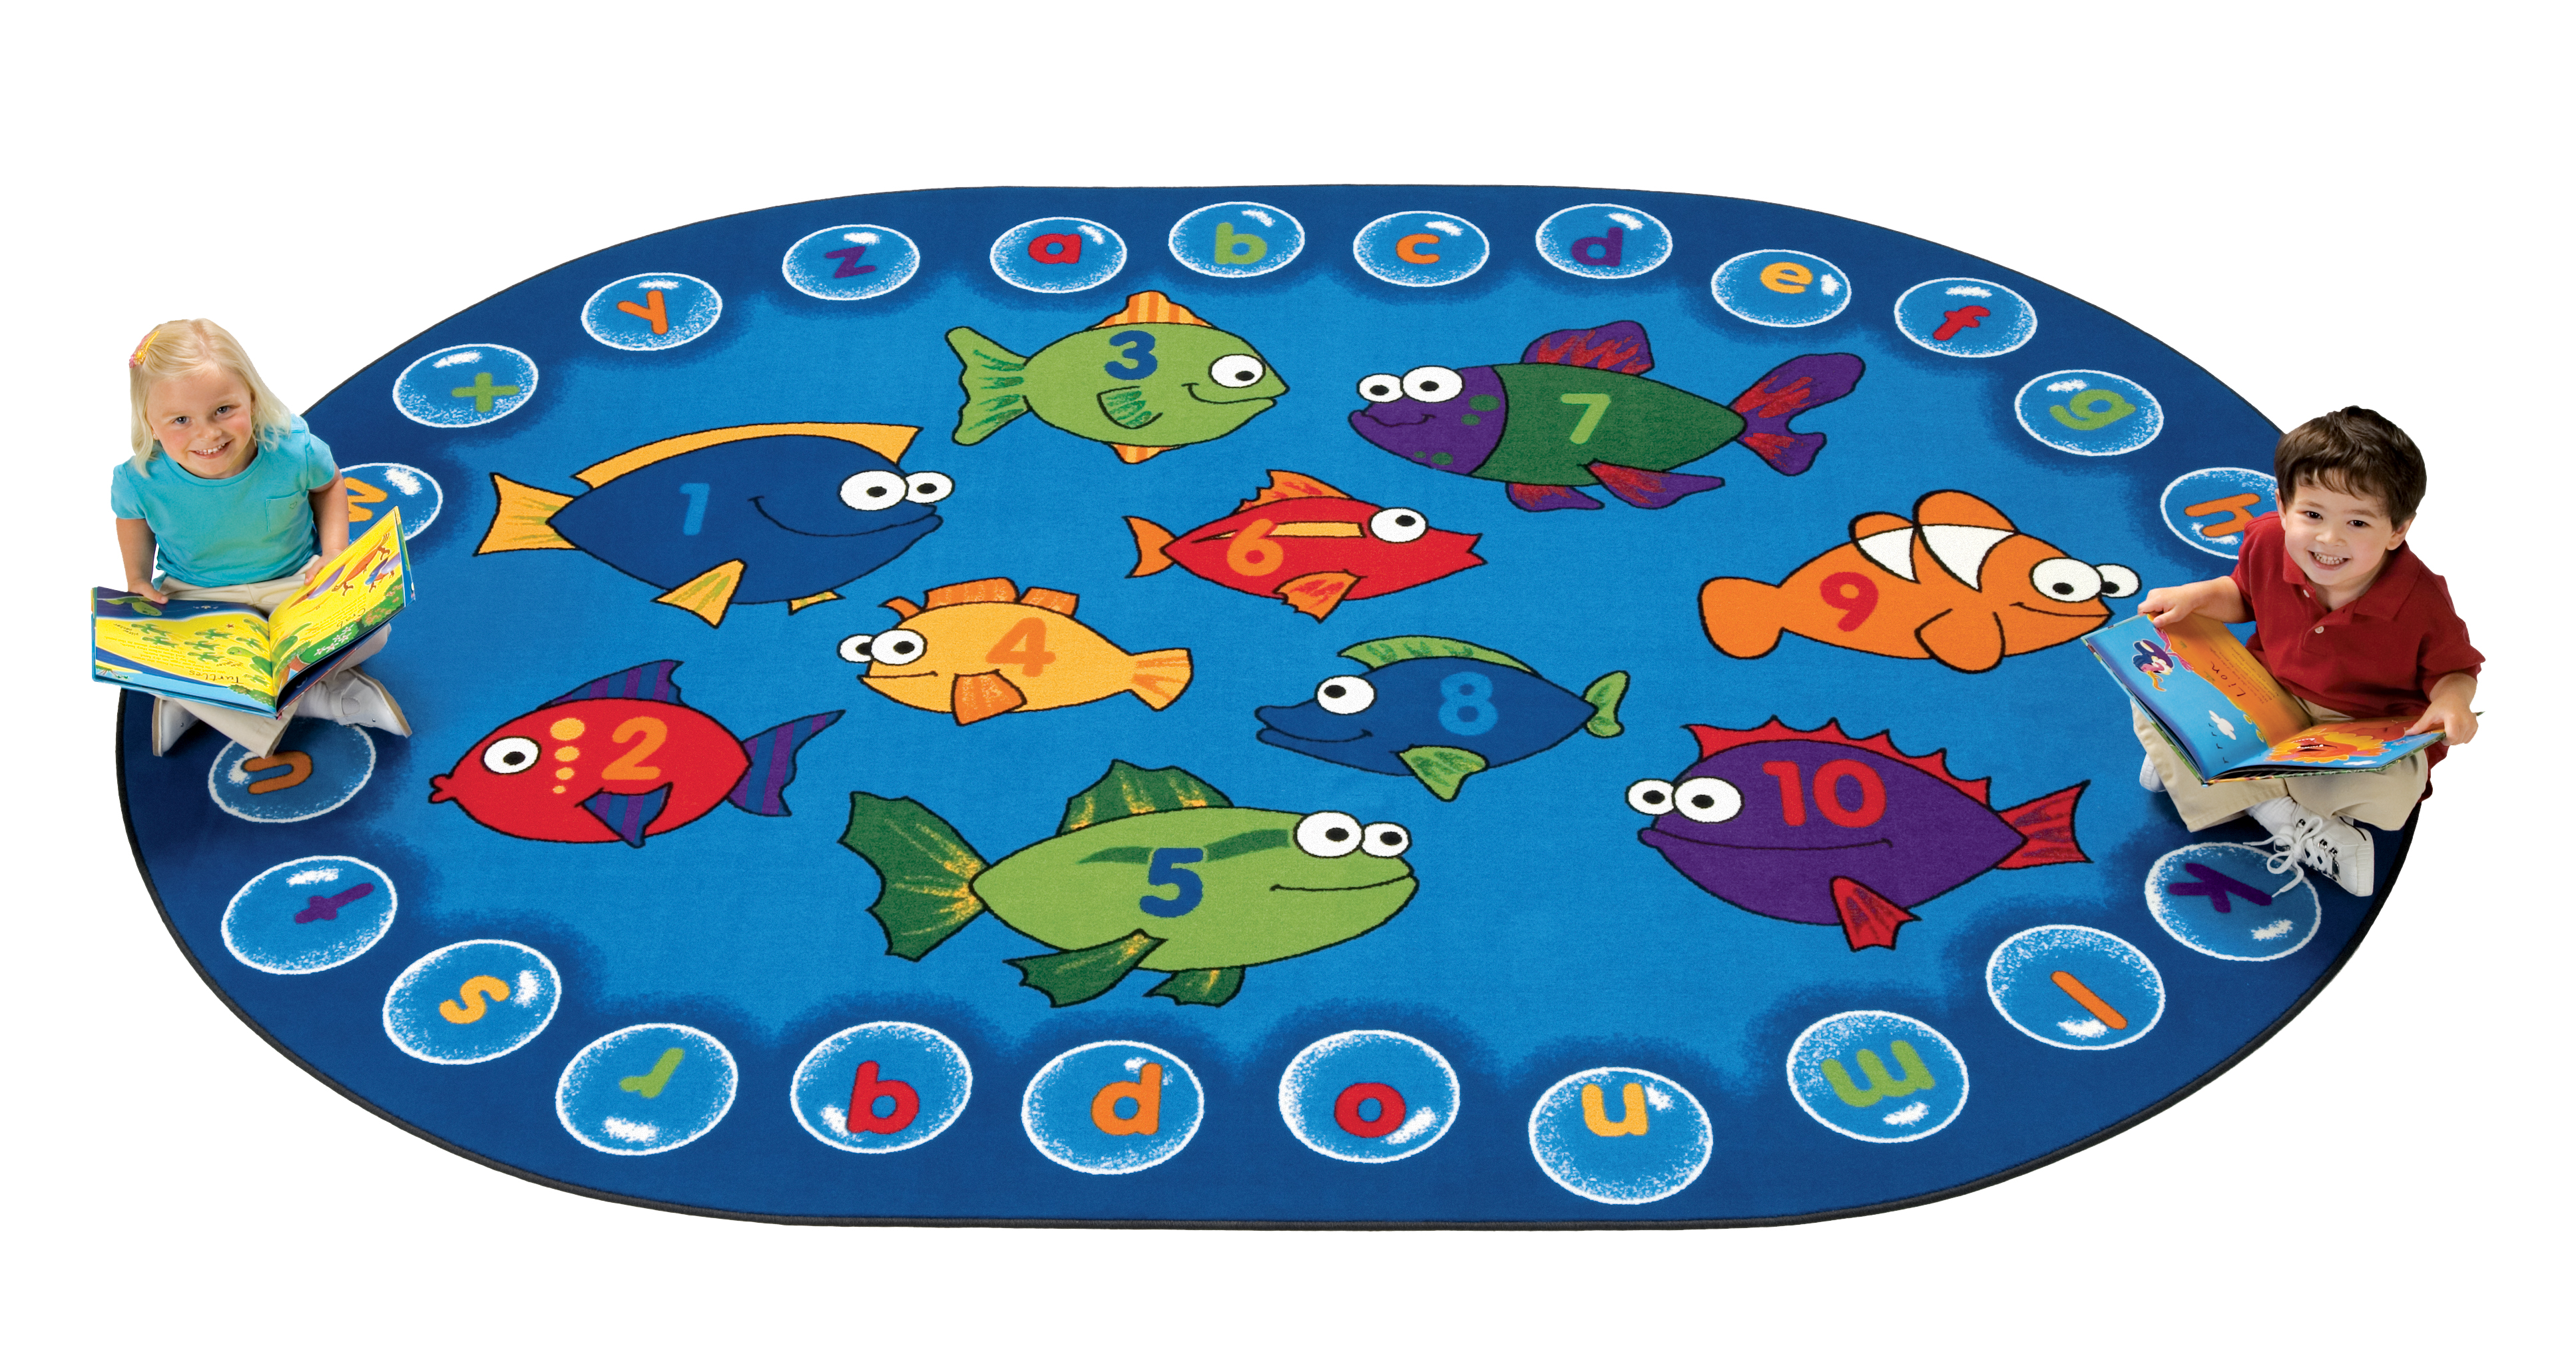 shoppypal com c rugs rug kids sale x jigsawpuzzle jigsaw multi on room htm classroom area puzzle